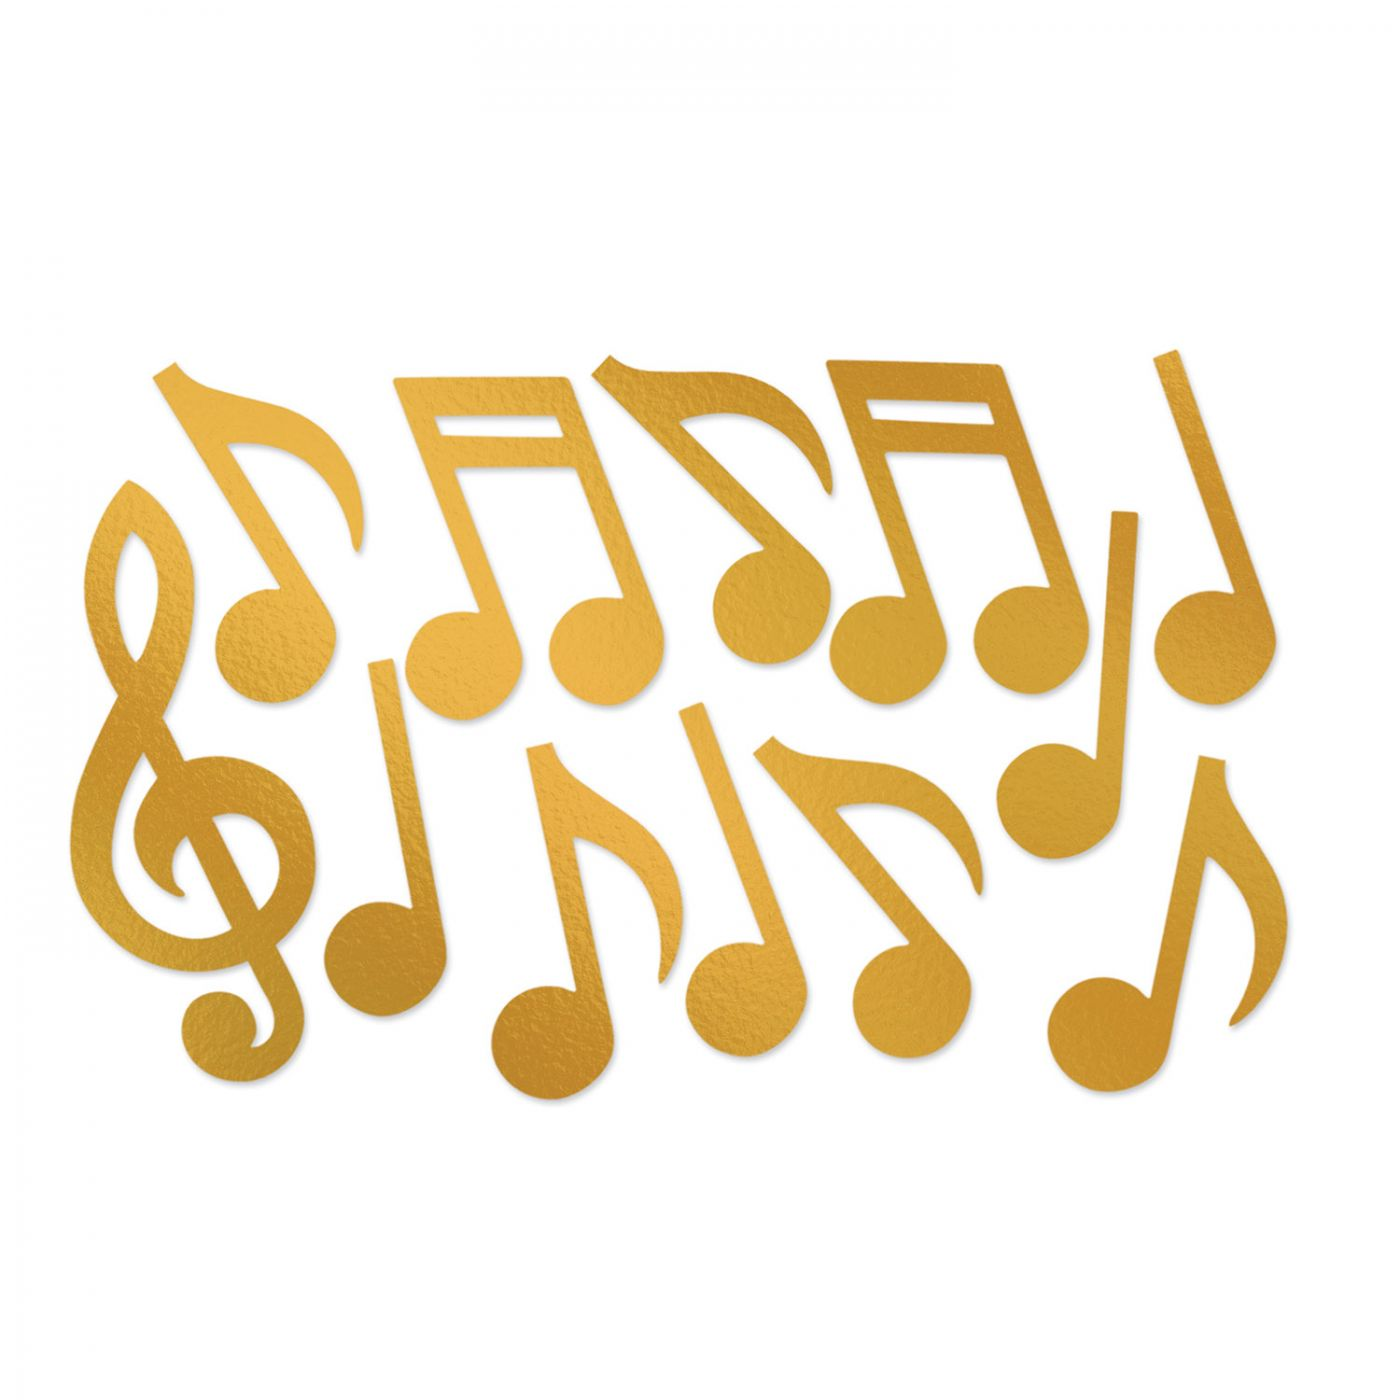 Gold Foil Musical Note Silhouettes image